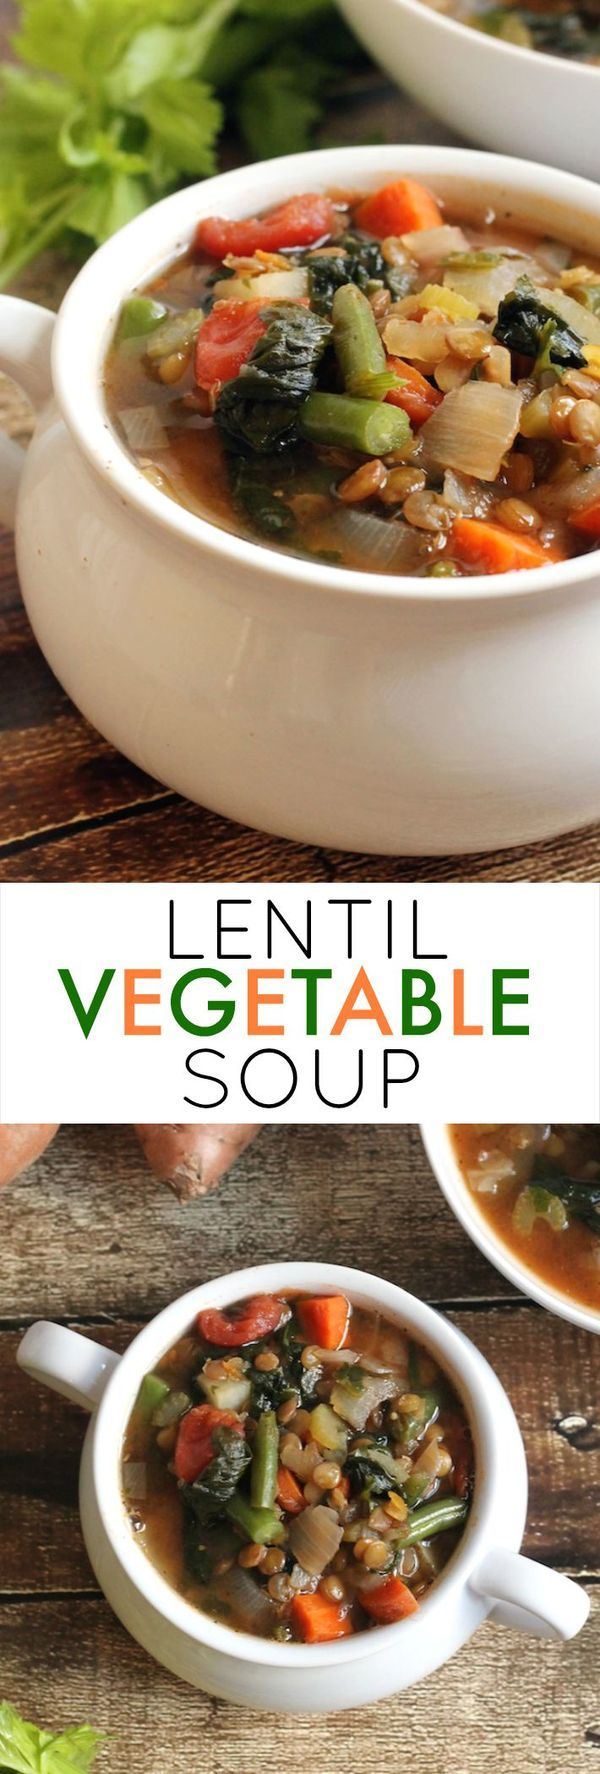 Lentil Vegetable Soup Vegetable Soups And Lentils On